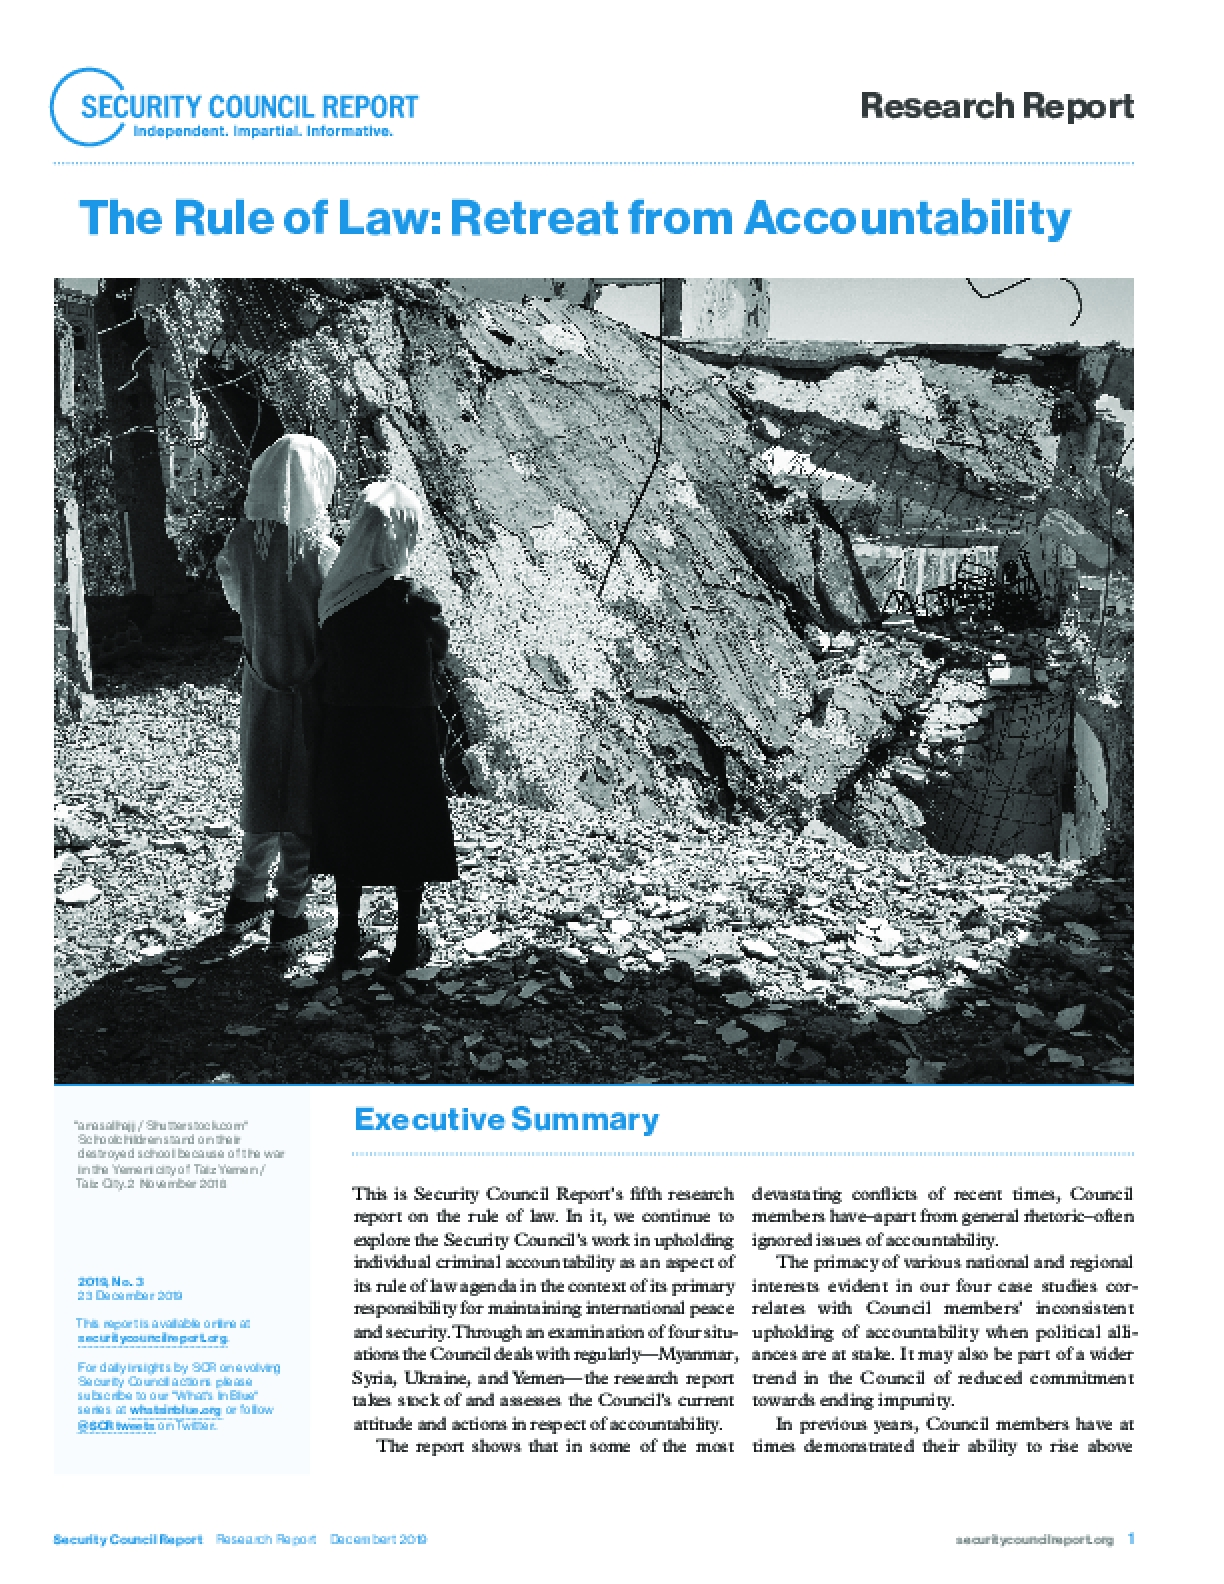 The Rule of Law: Retreat from Accountability